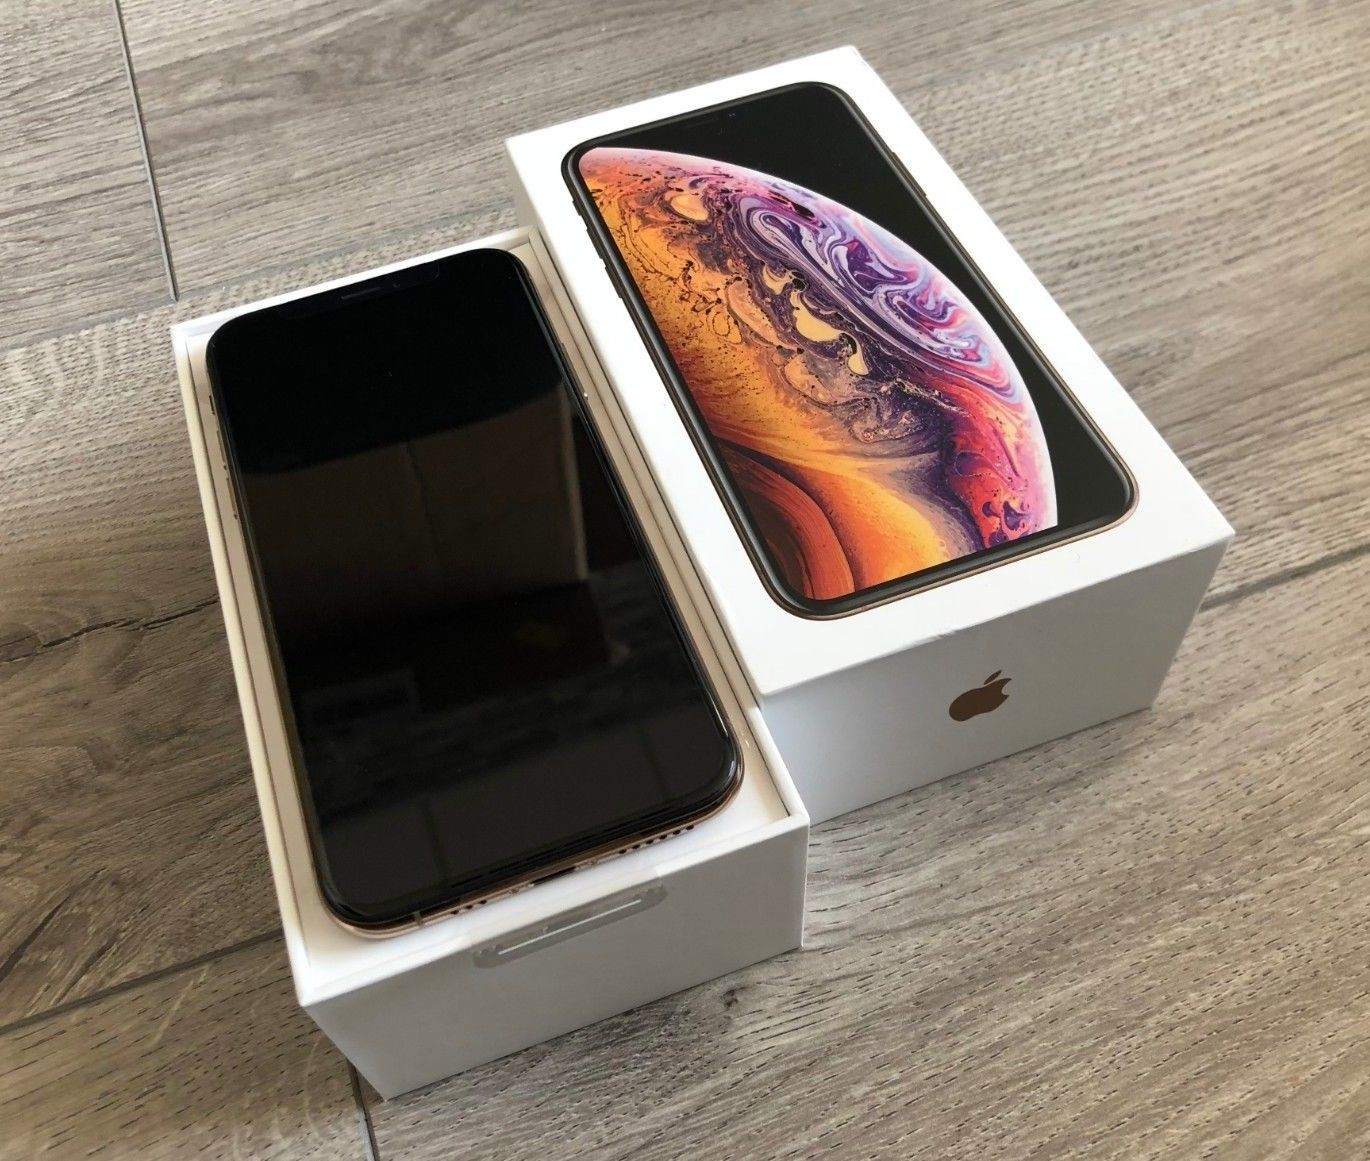 Apple iPhone XS 64GB = €450 ,iPhone XS Max 64GB = €480,iPhone X 64GB = €350,iPhone 8 64GB = €260, Apple iPhone XR 64GB = €380 , Whatsapp Chat : +27837724253